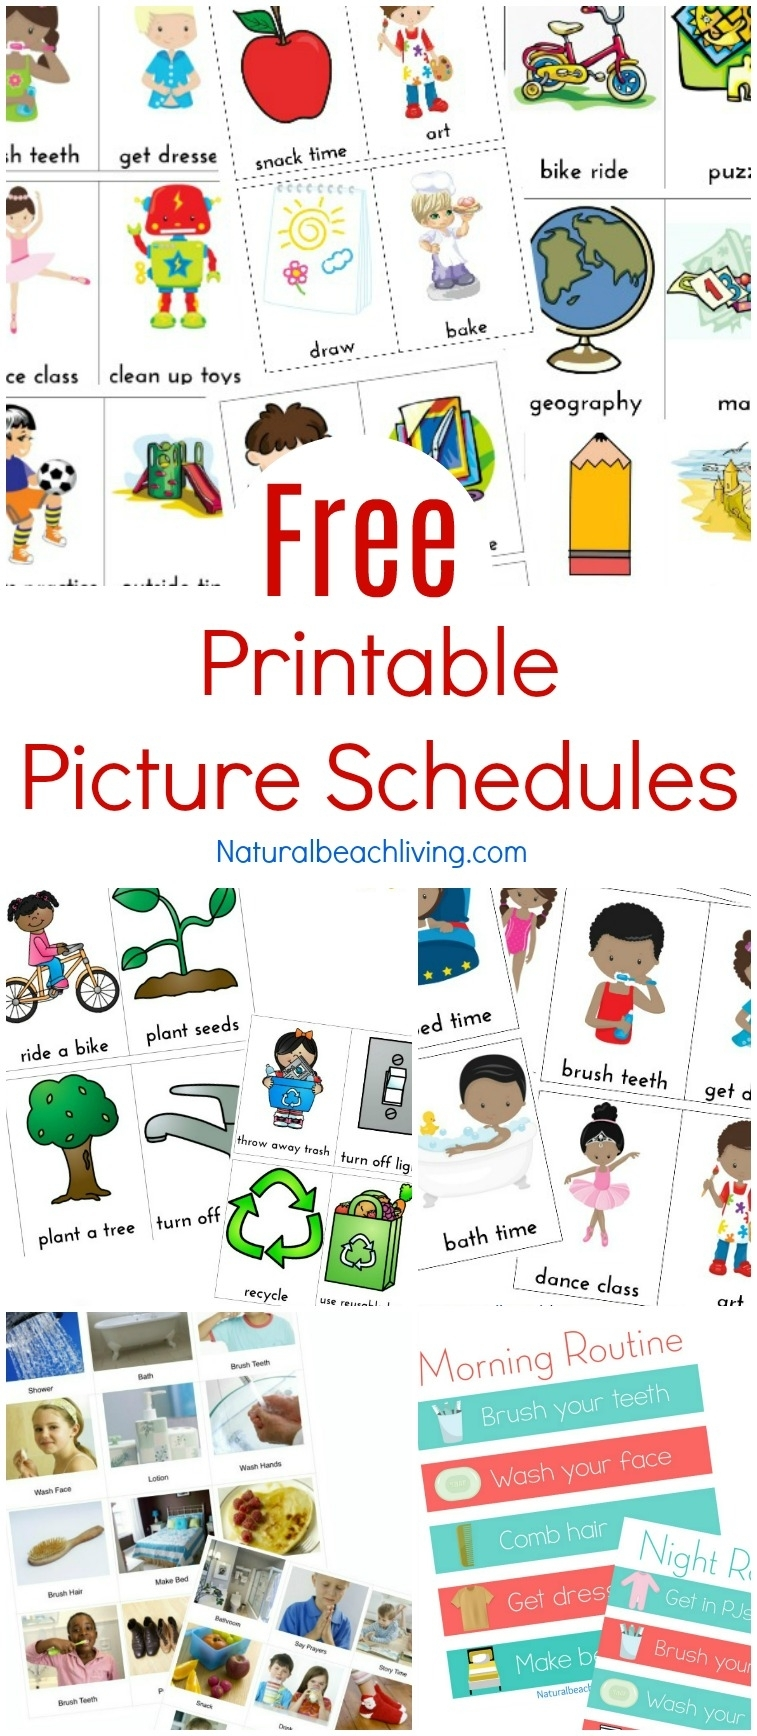 Catch Free Printable Picture Schedules For Children